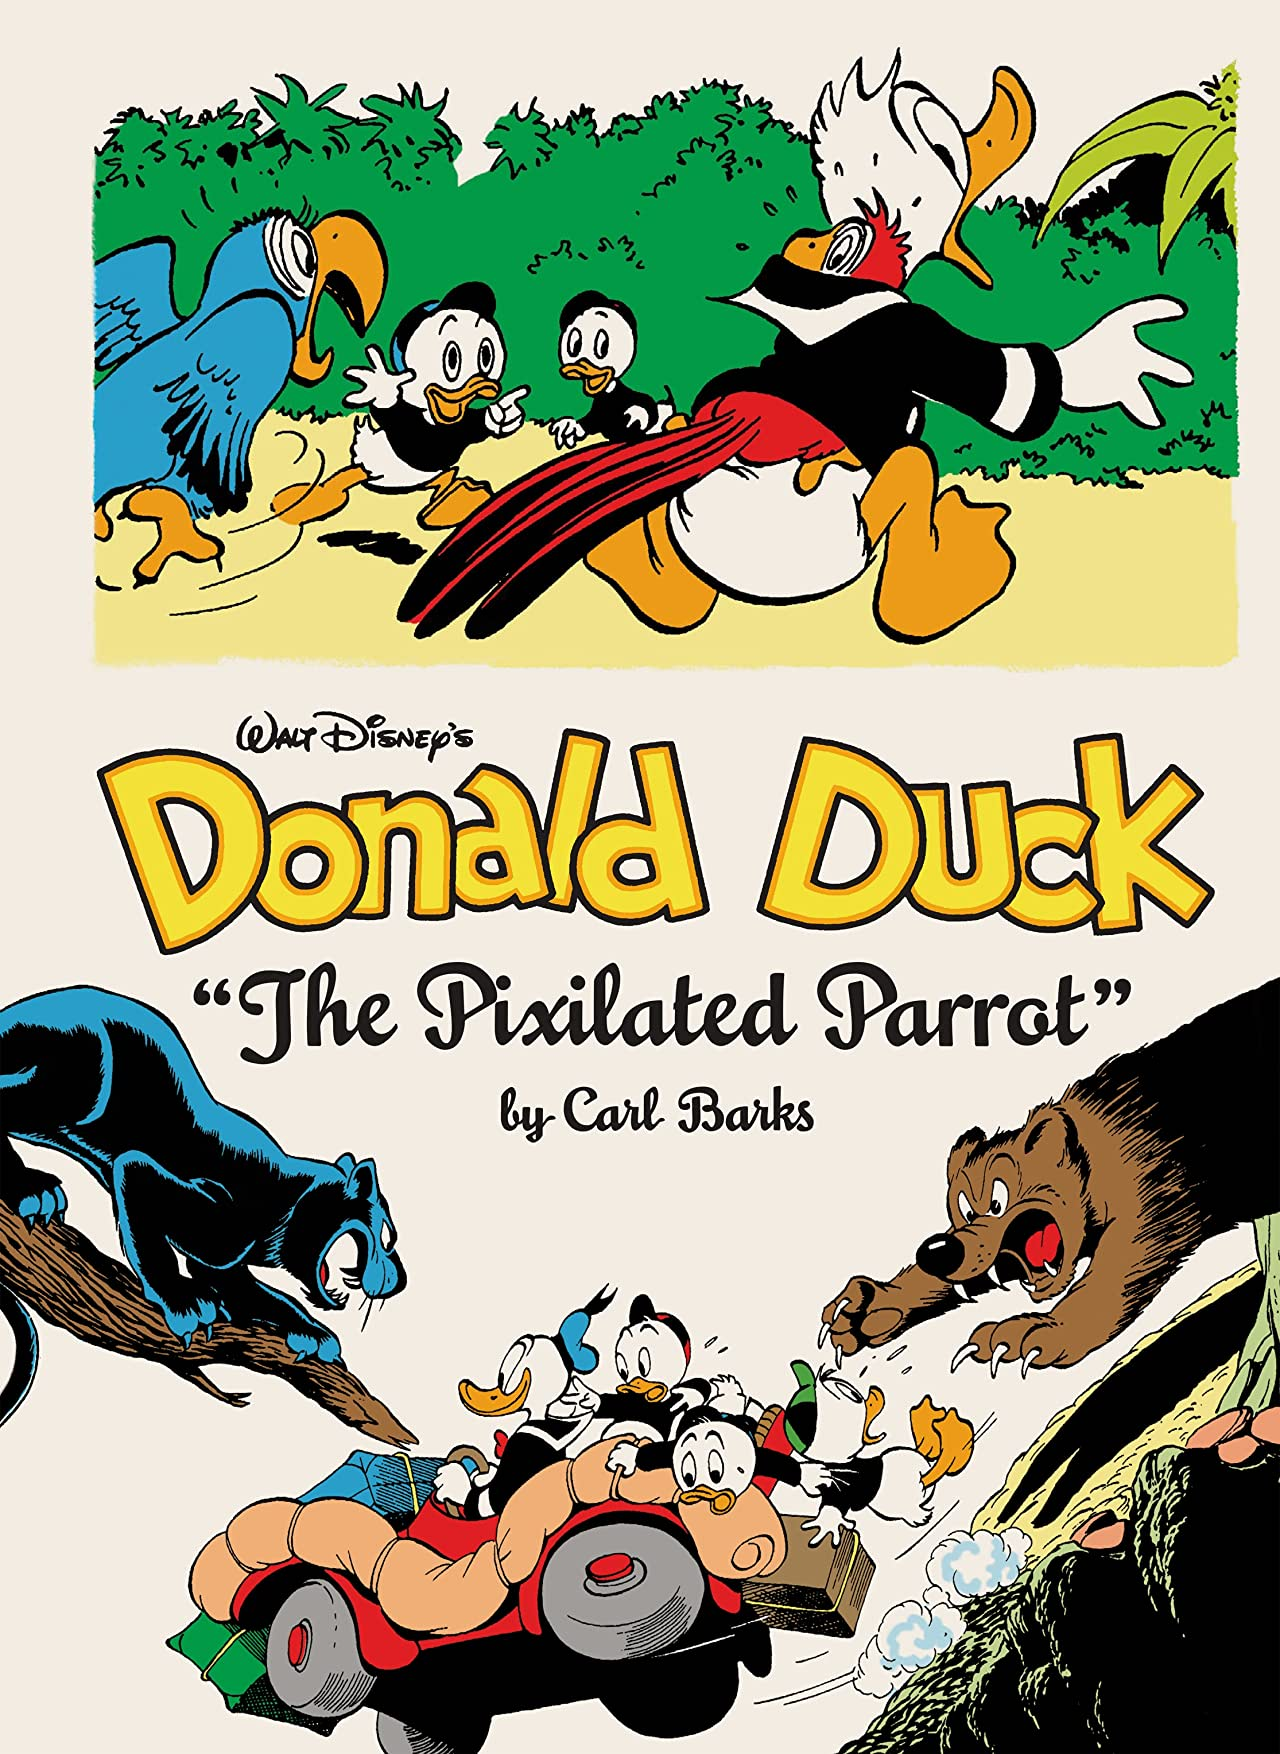 Walt Disney's Donald Duck Vol. 9: The Pixilated Parrot